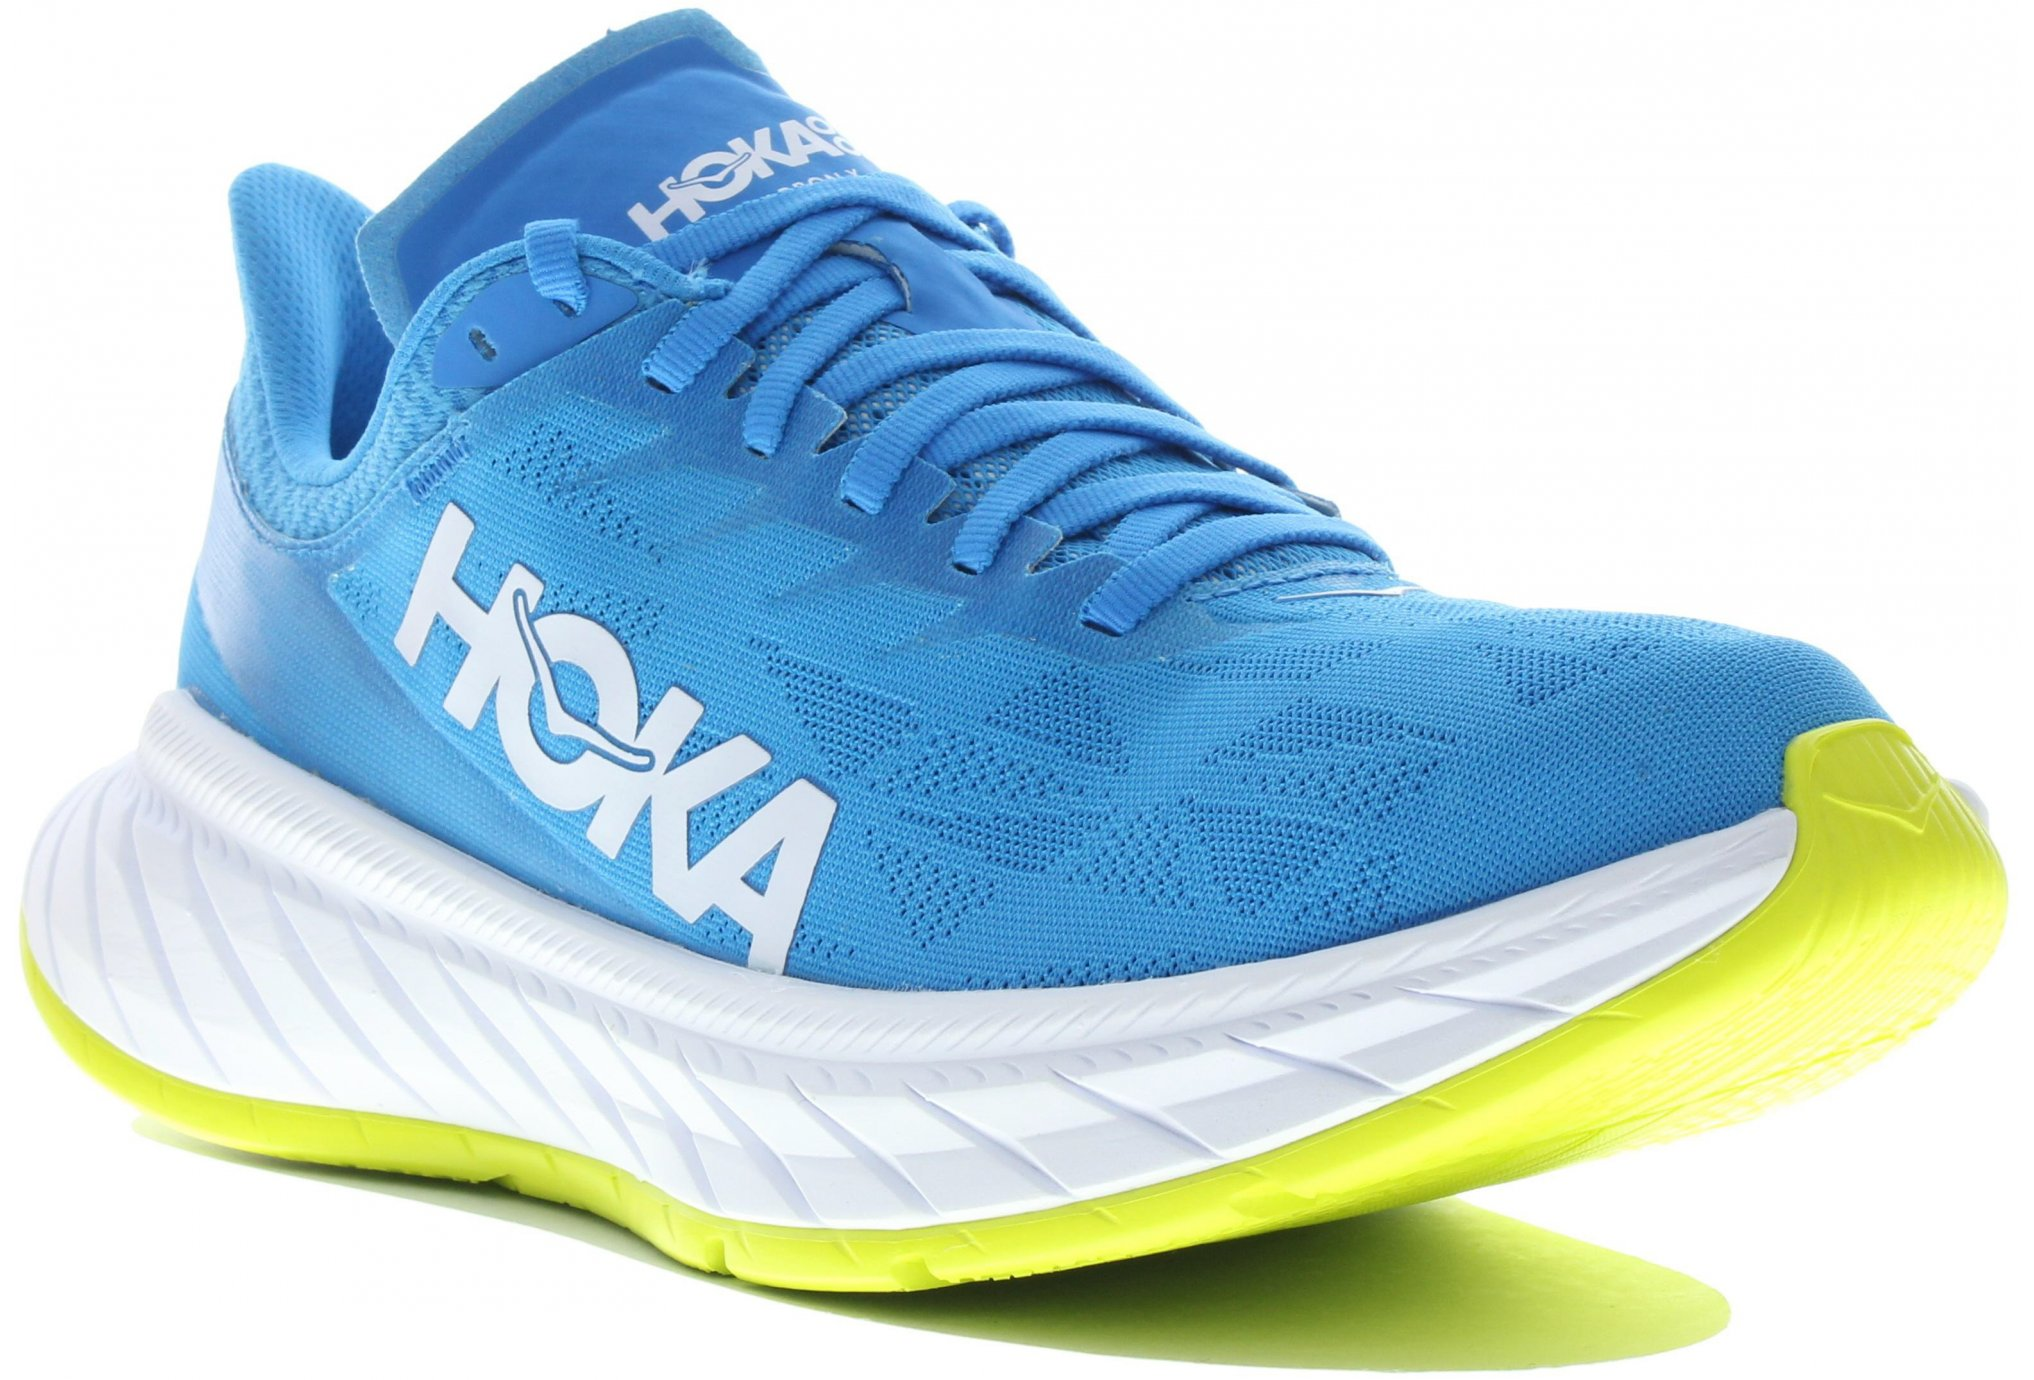 Hoka One One Carbon X 2 Chaussures running femme